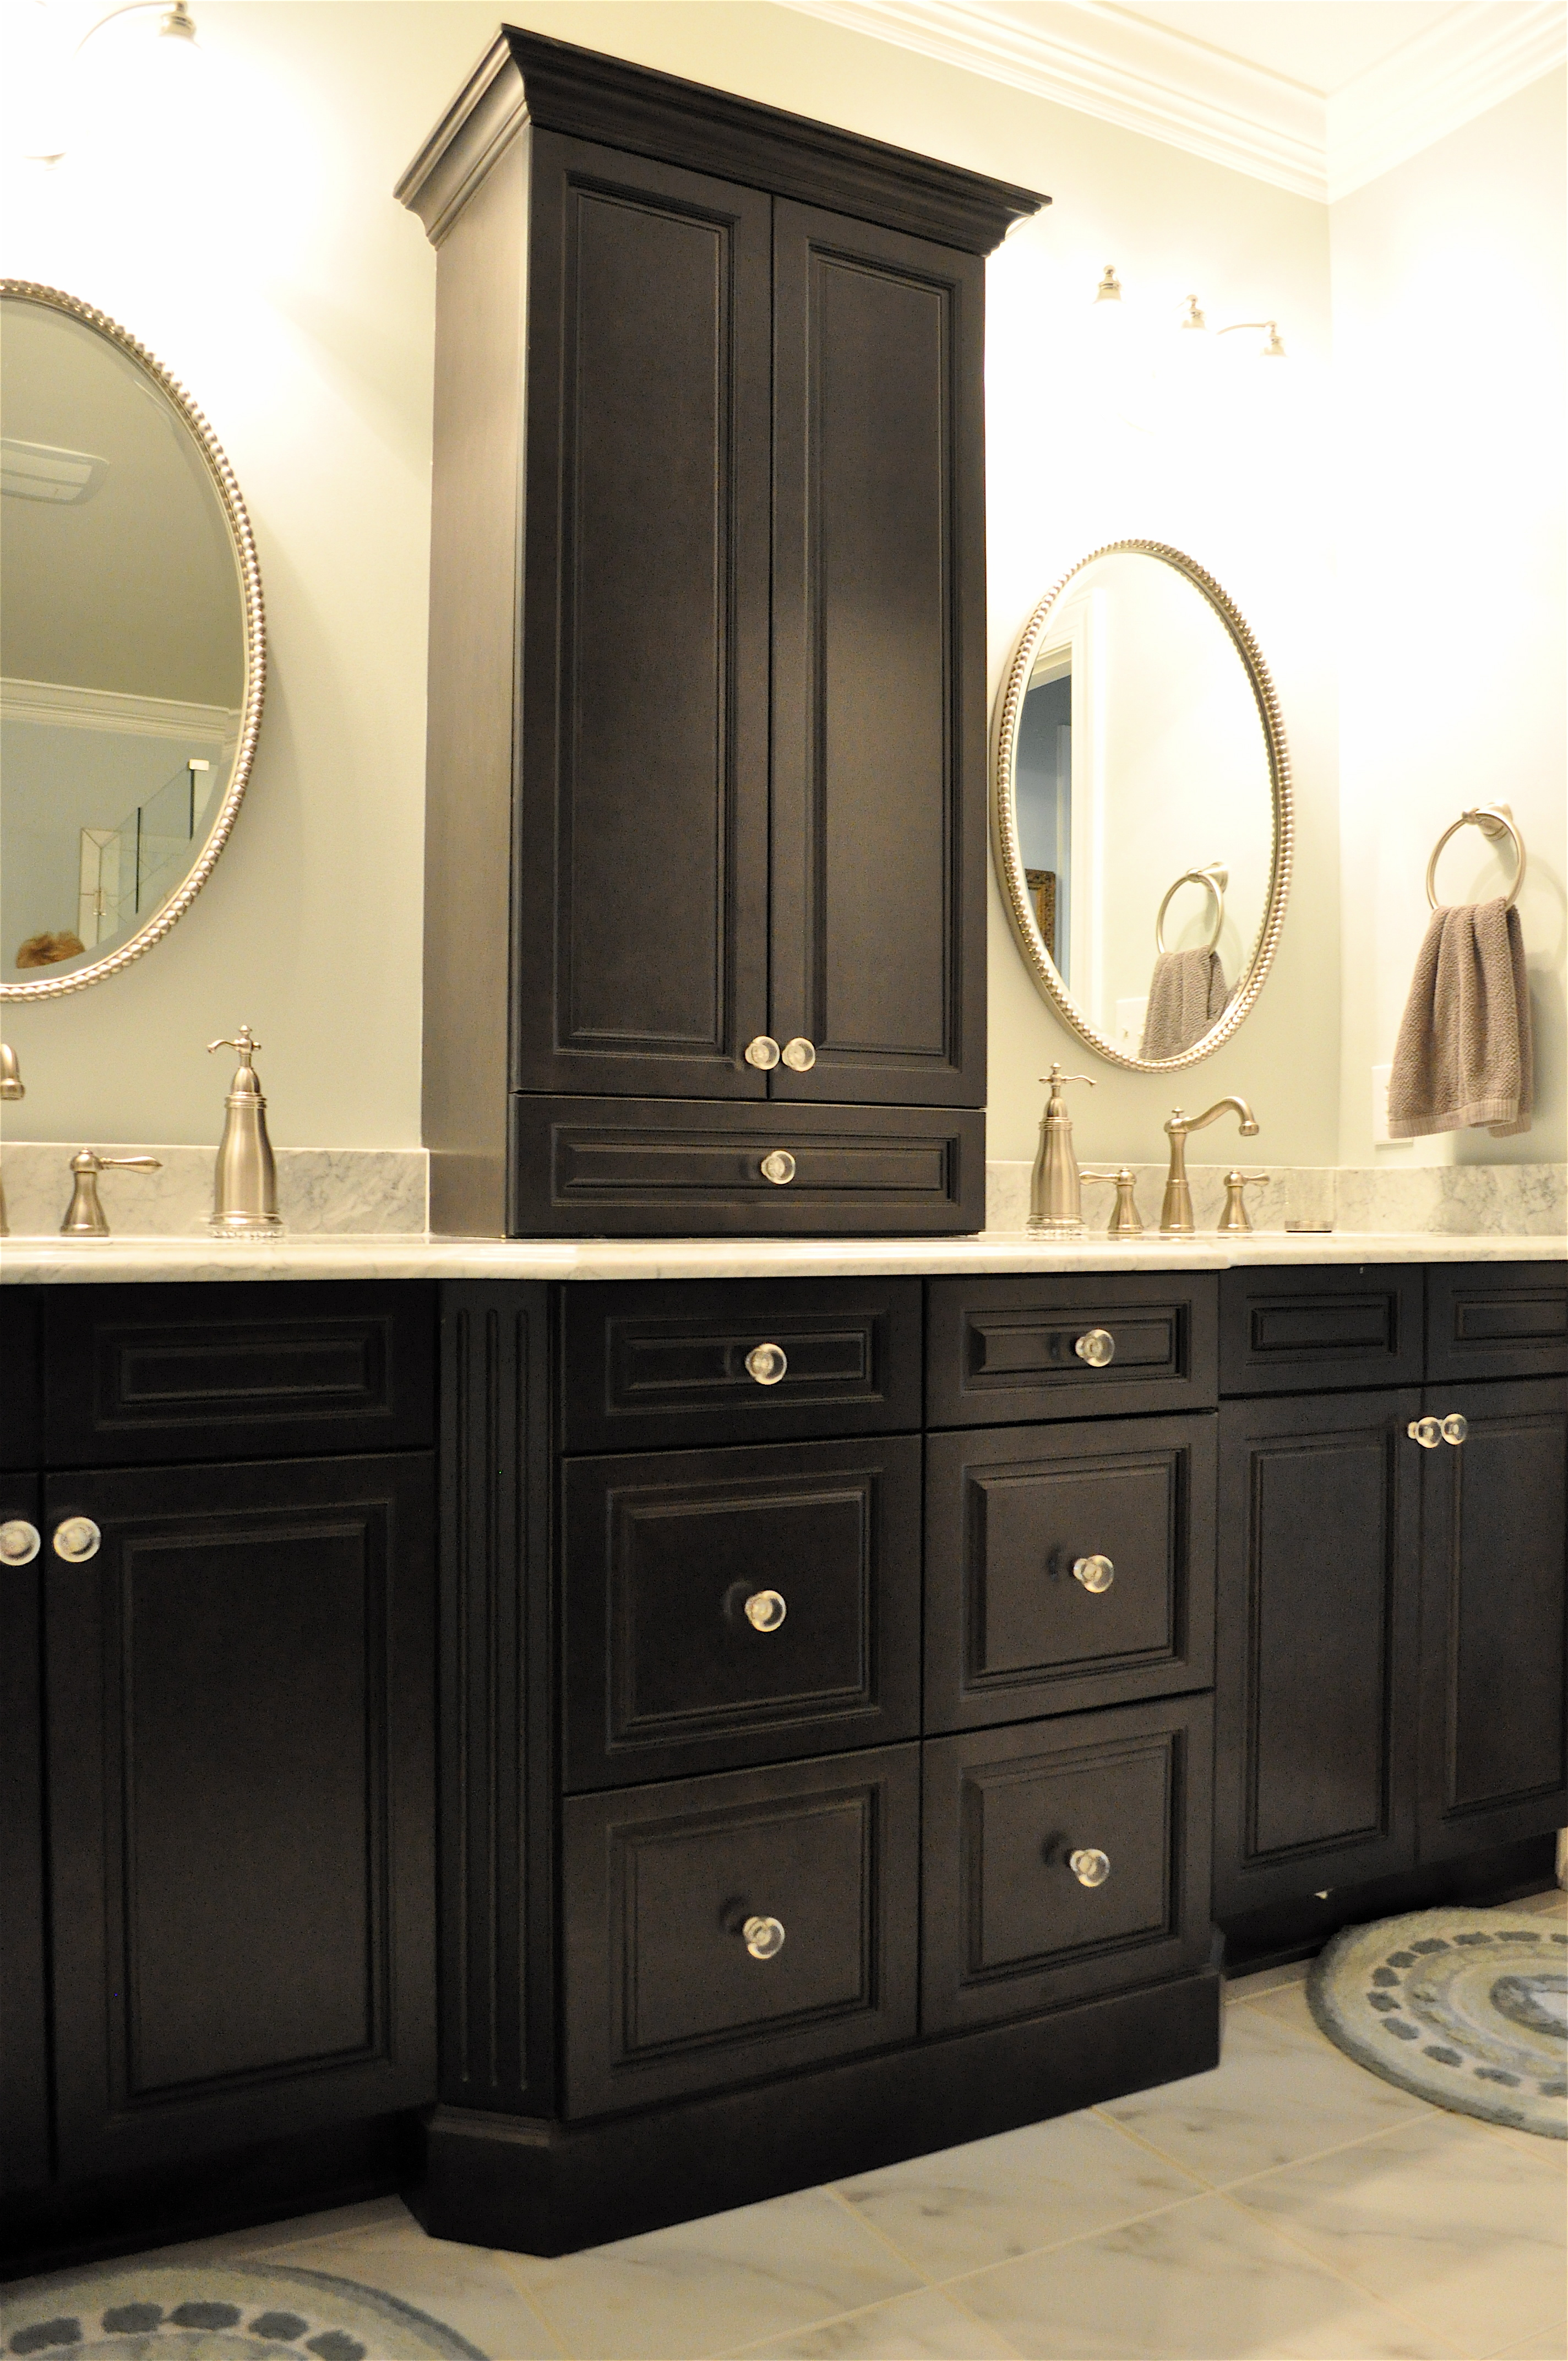 Bathroom Countertop Storage Cabinets With Luxury